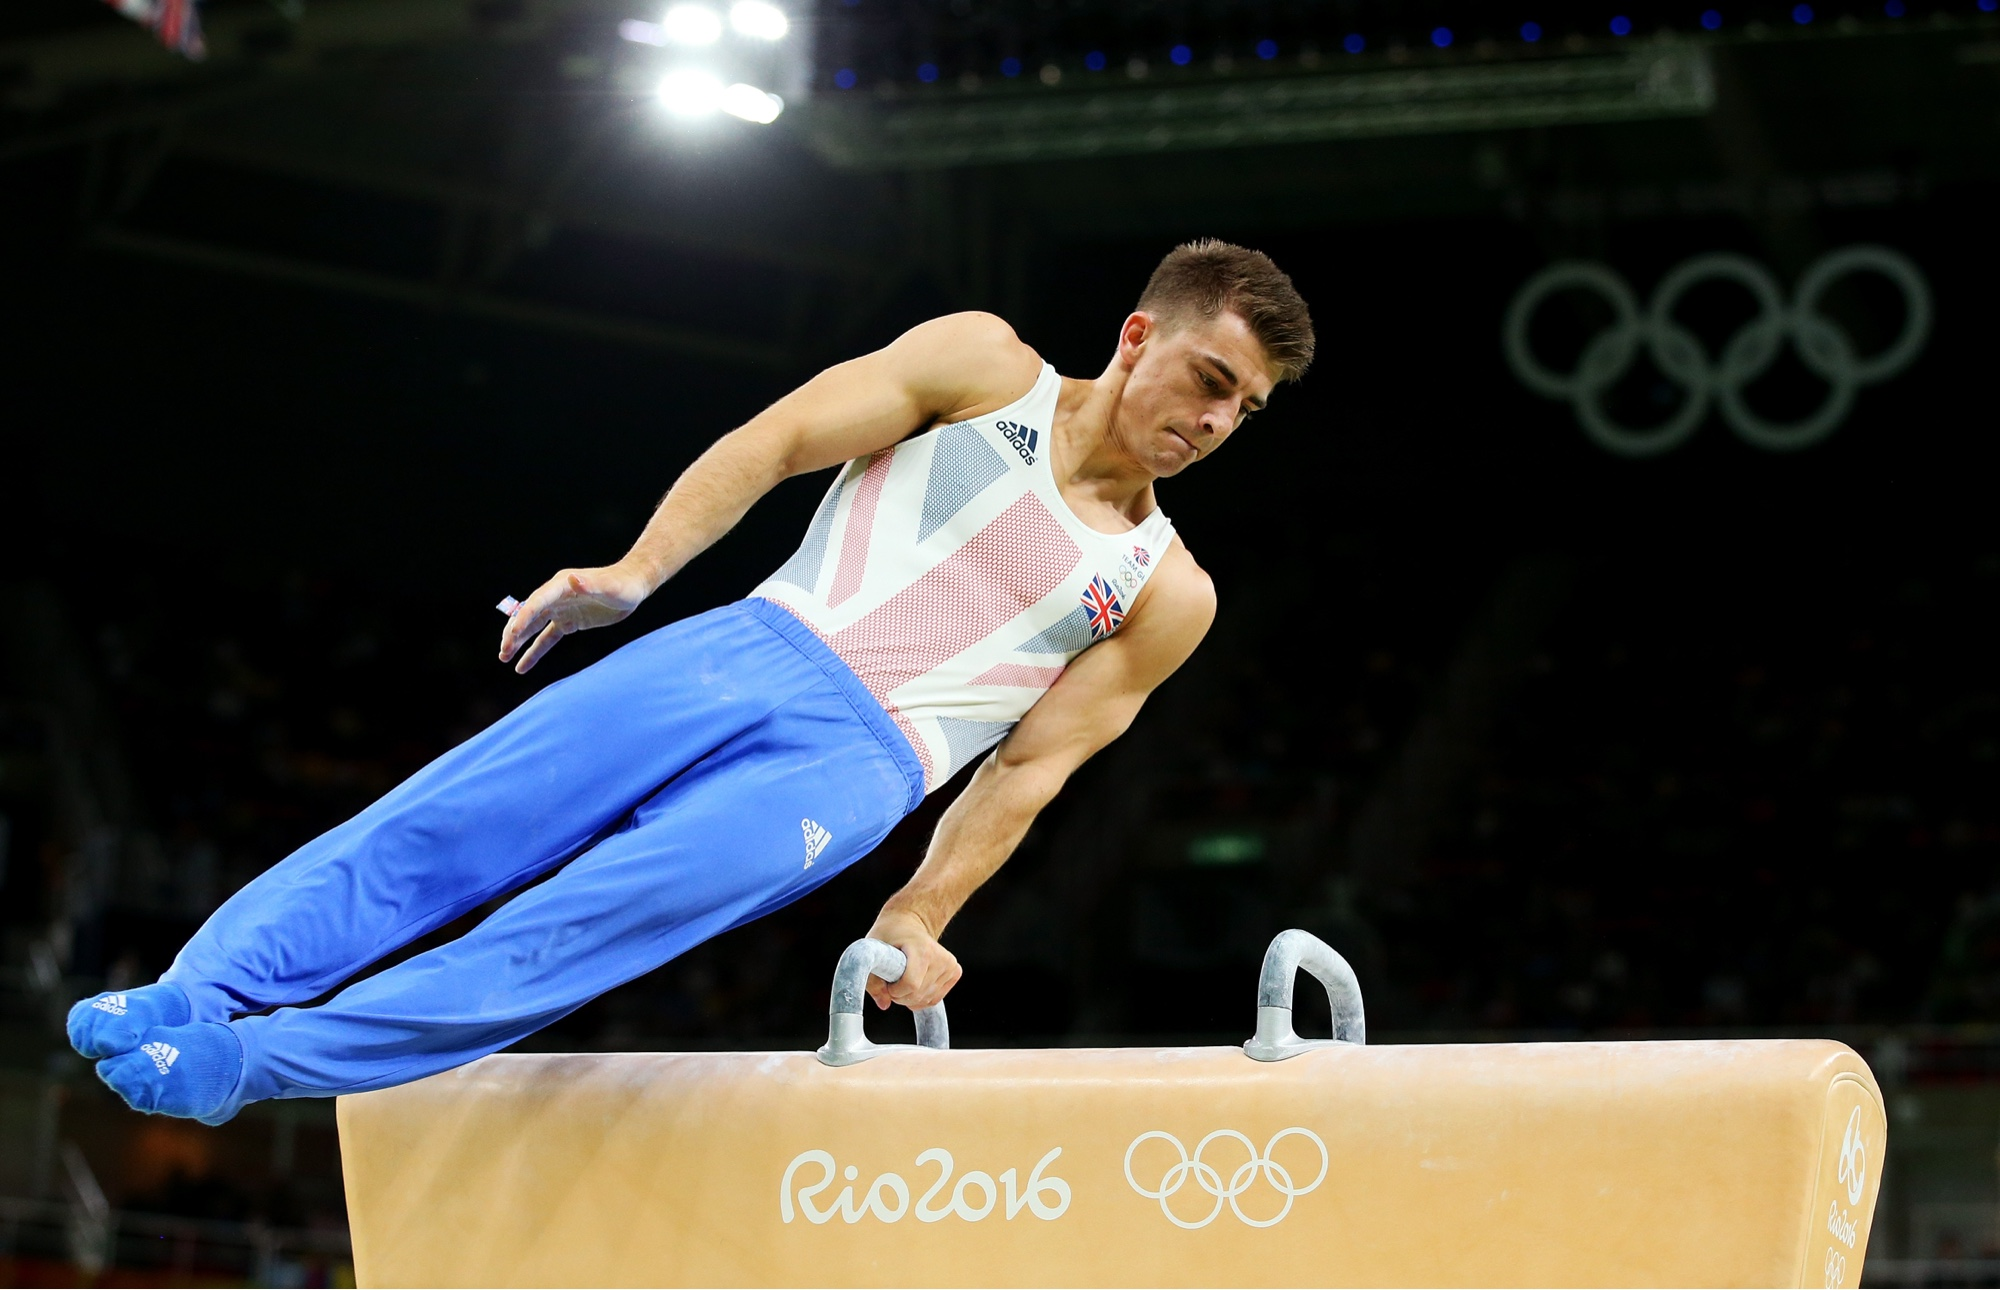 Max Whitlock going for glory in Rio with third medal